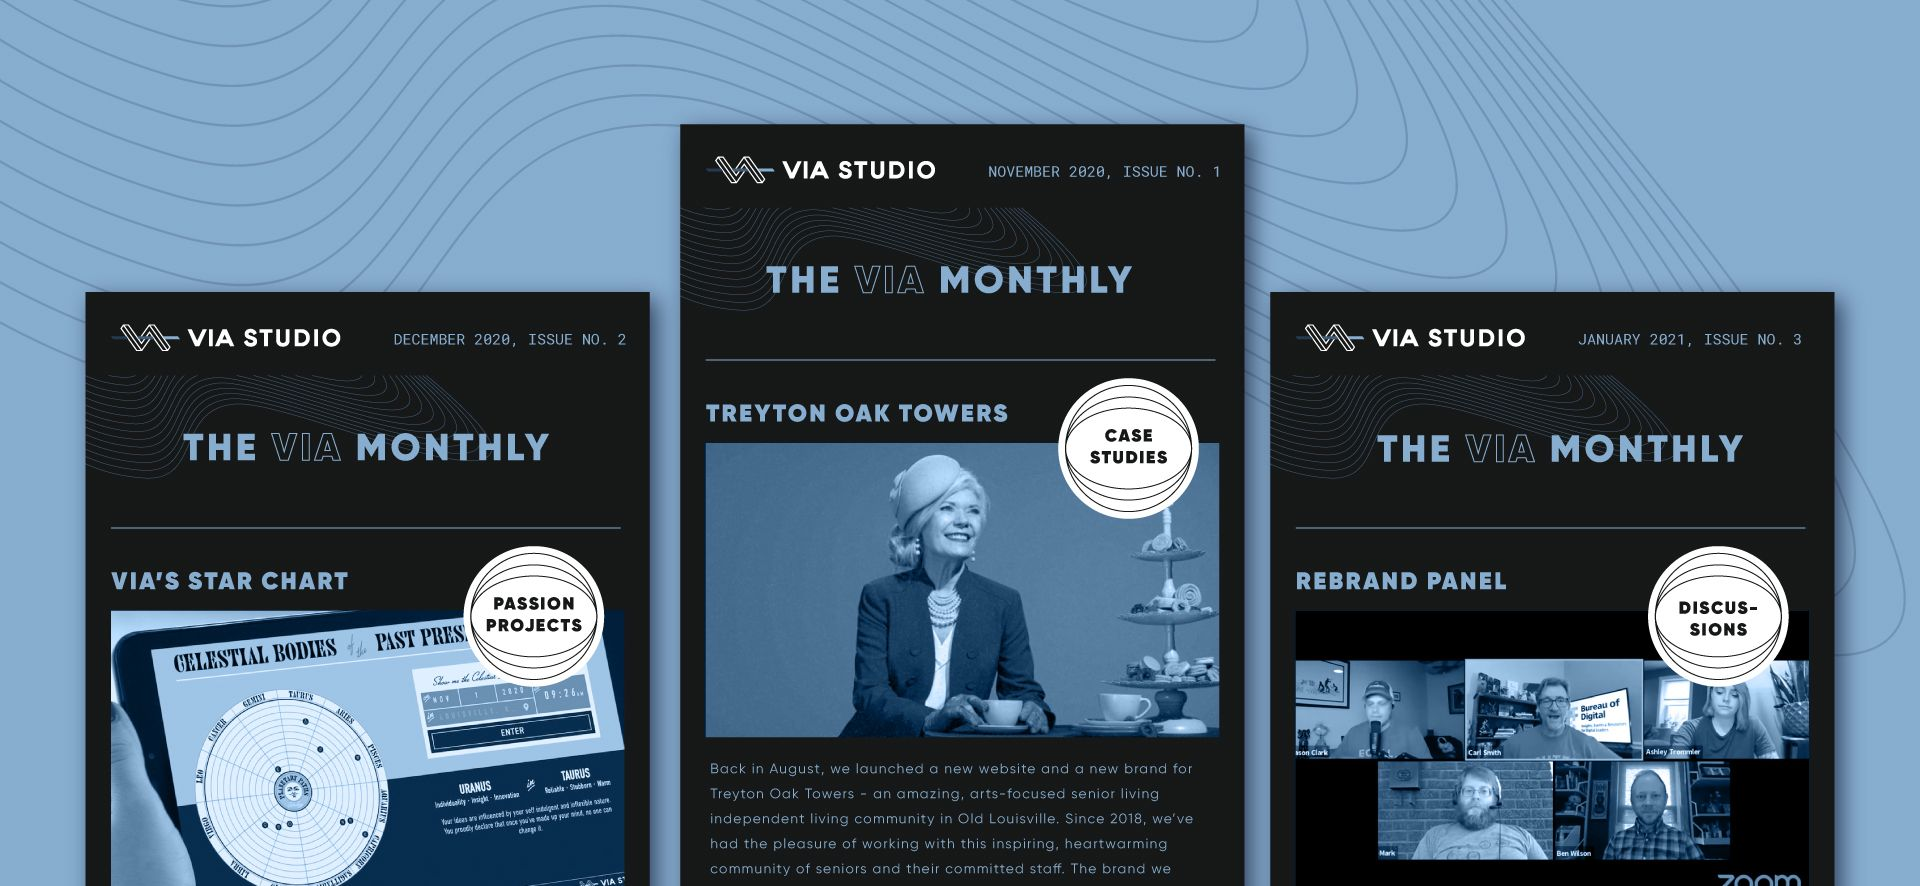 Three-up display of VIA Monthly content: passion projects, case studies and discussions